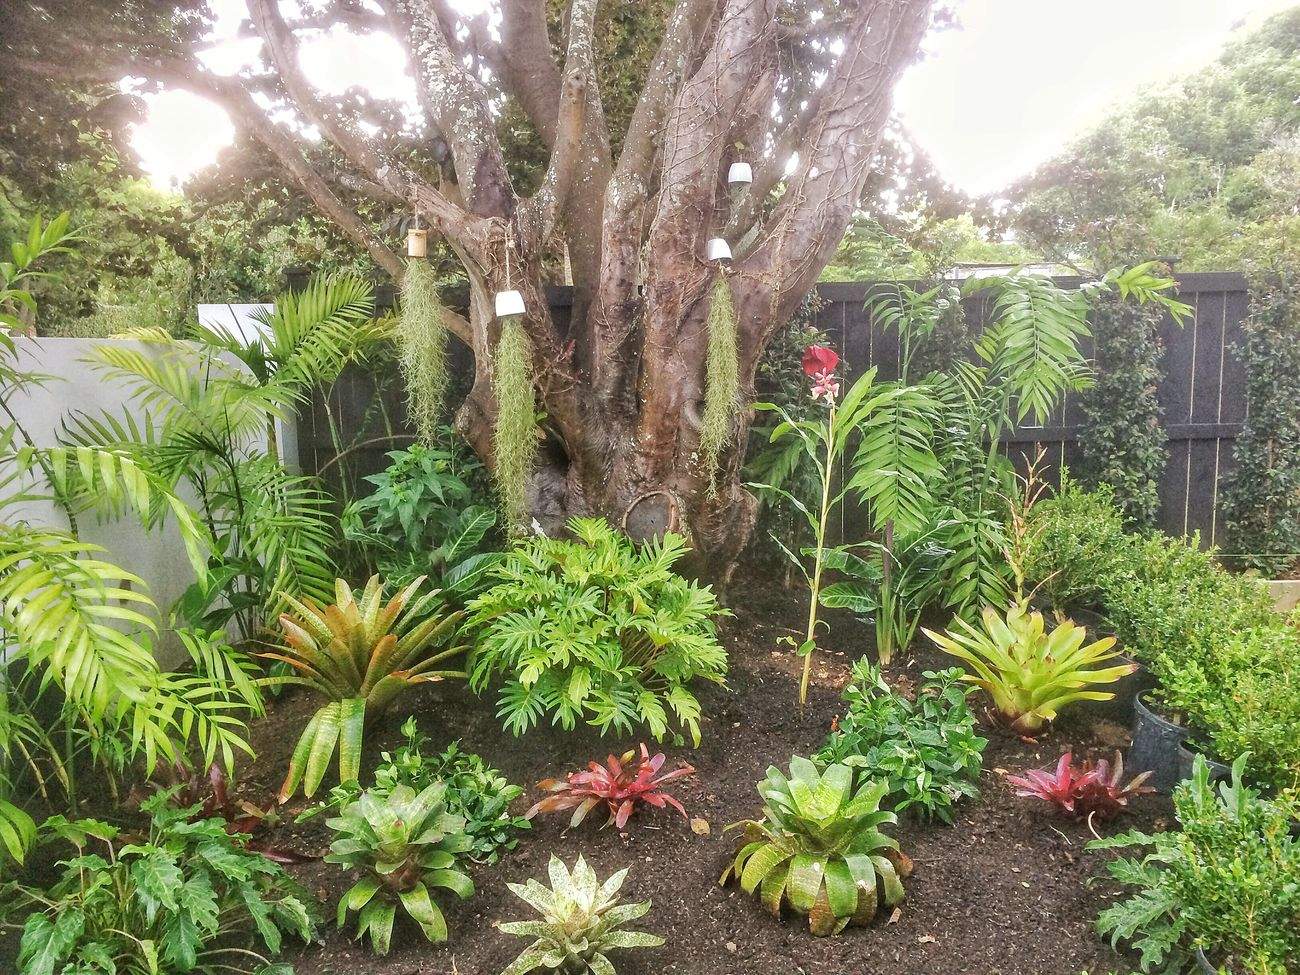 New Garden I made today 😊 Tropical Garden Tropical Plants Bromeliads Palms Tilandsia Growth Tree Green Color Leaf Freshness Lush Foliage Garden Photography Gardenia